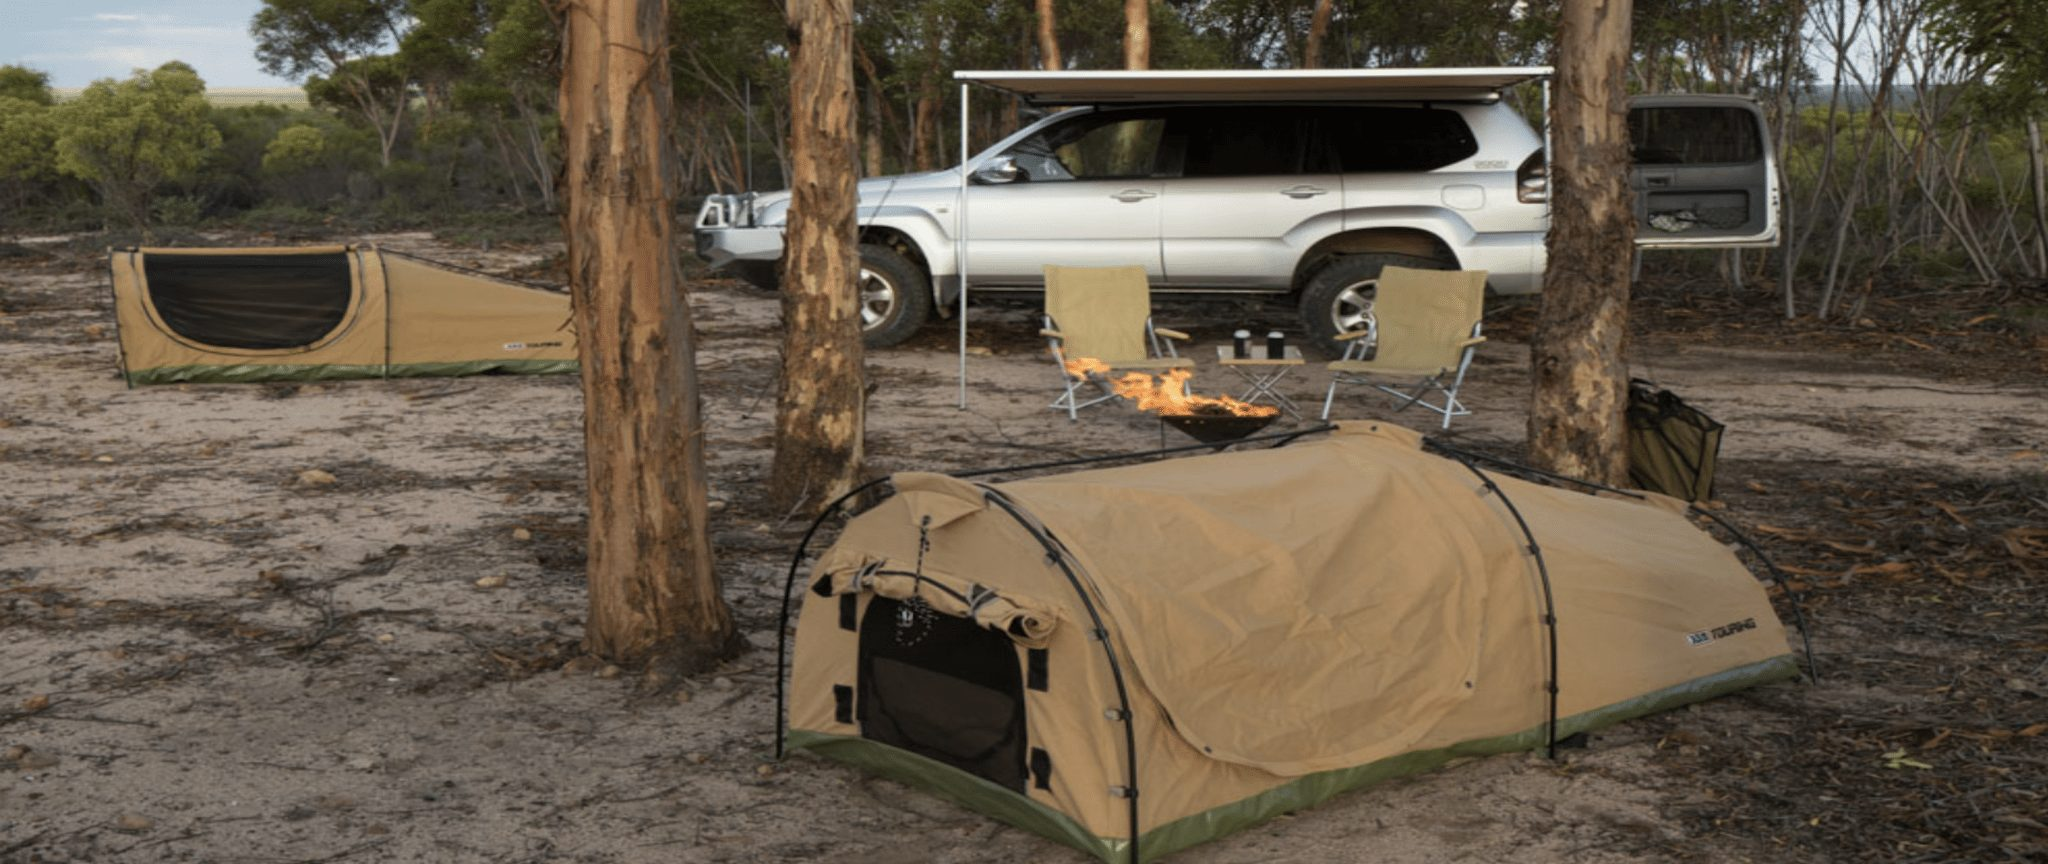 Best Swags Australia Outback Review